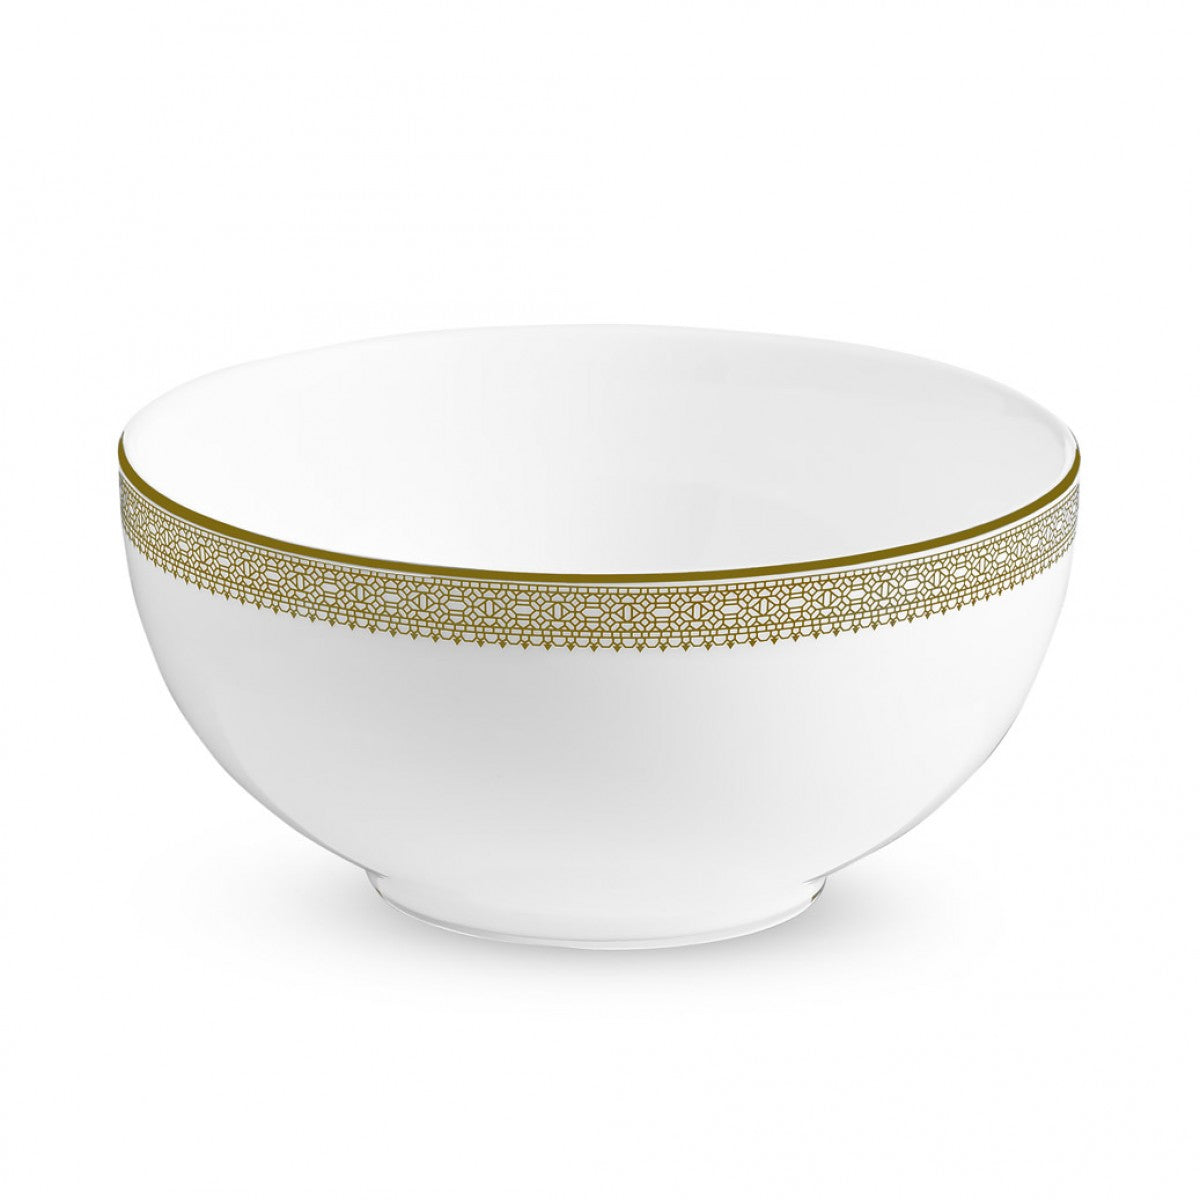 Vera Wang Lace Gold Soup/Cereal Bowl